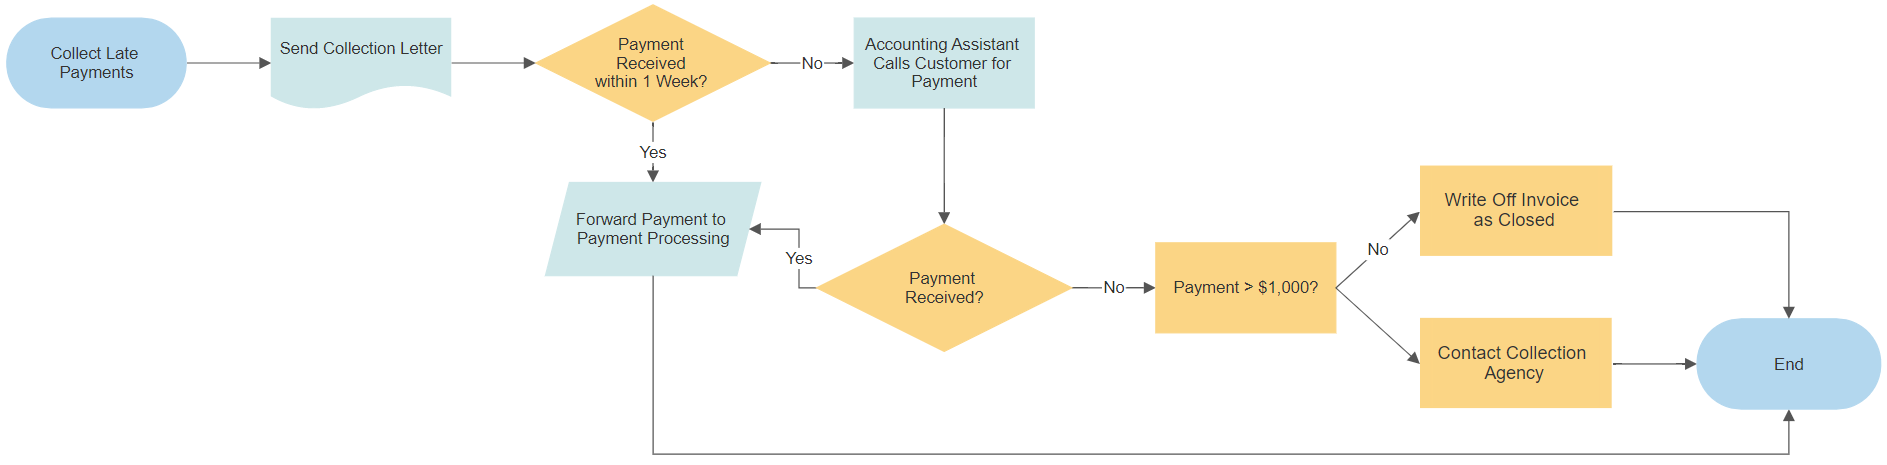 Late Payments Process Flowchart